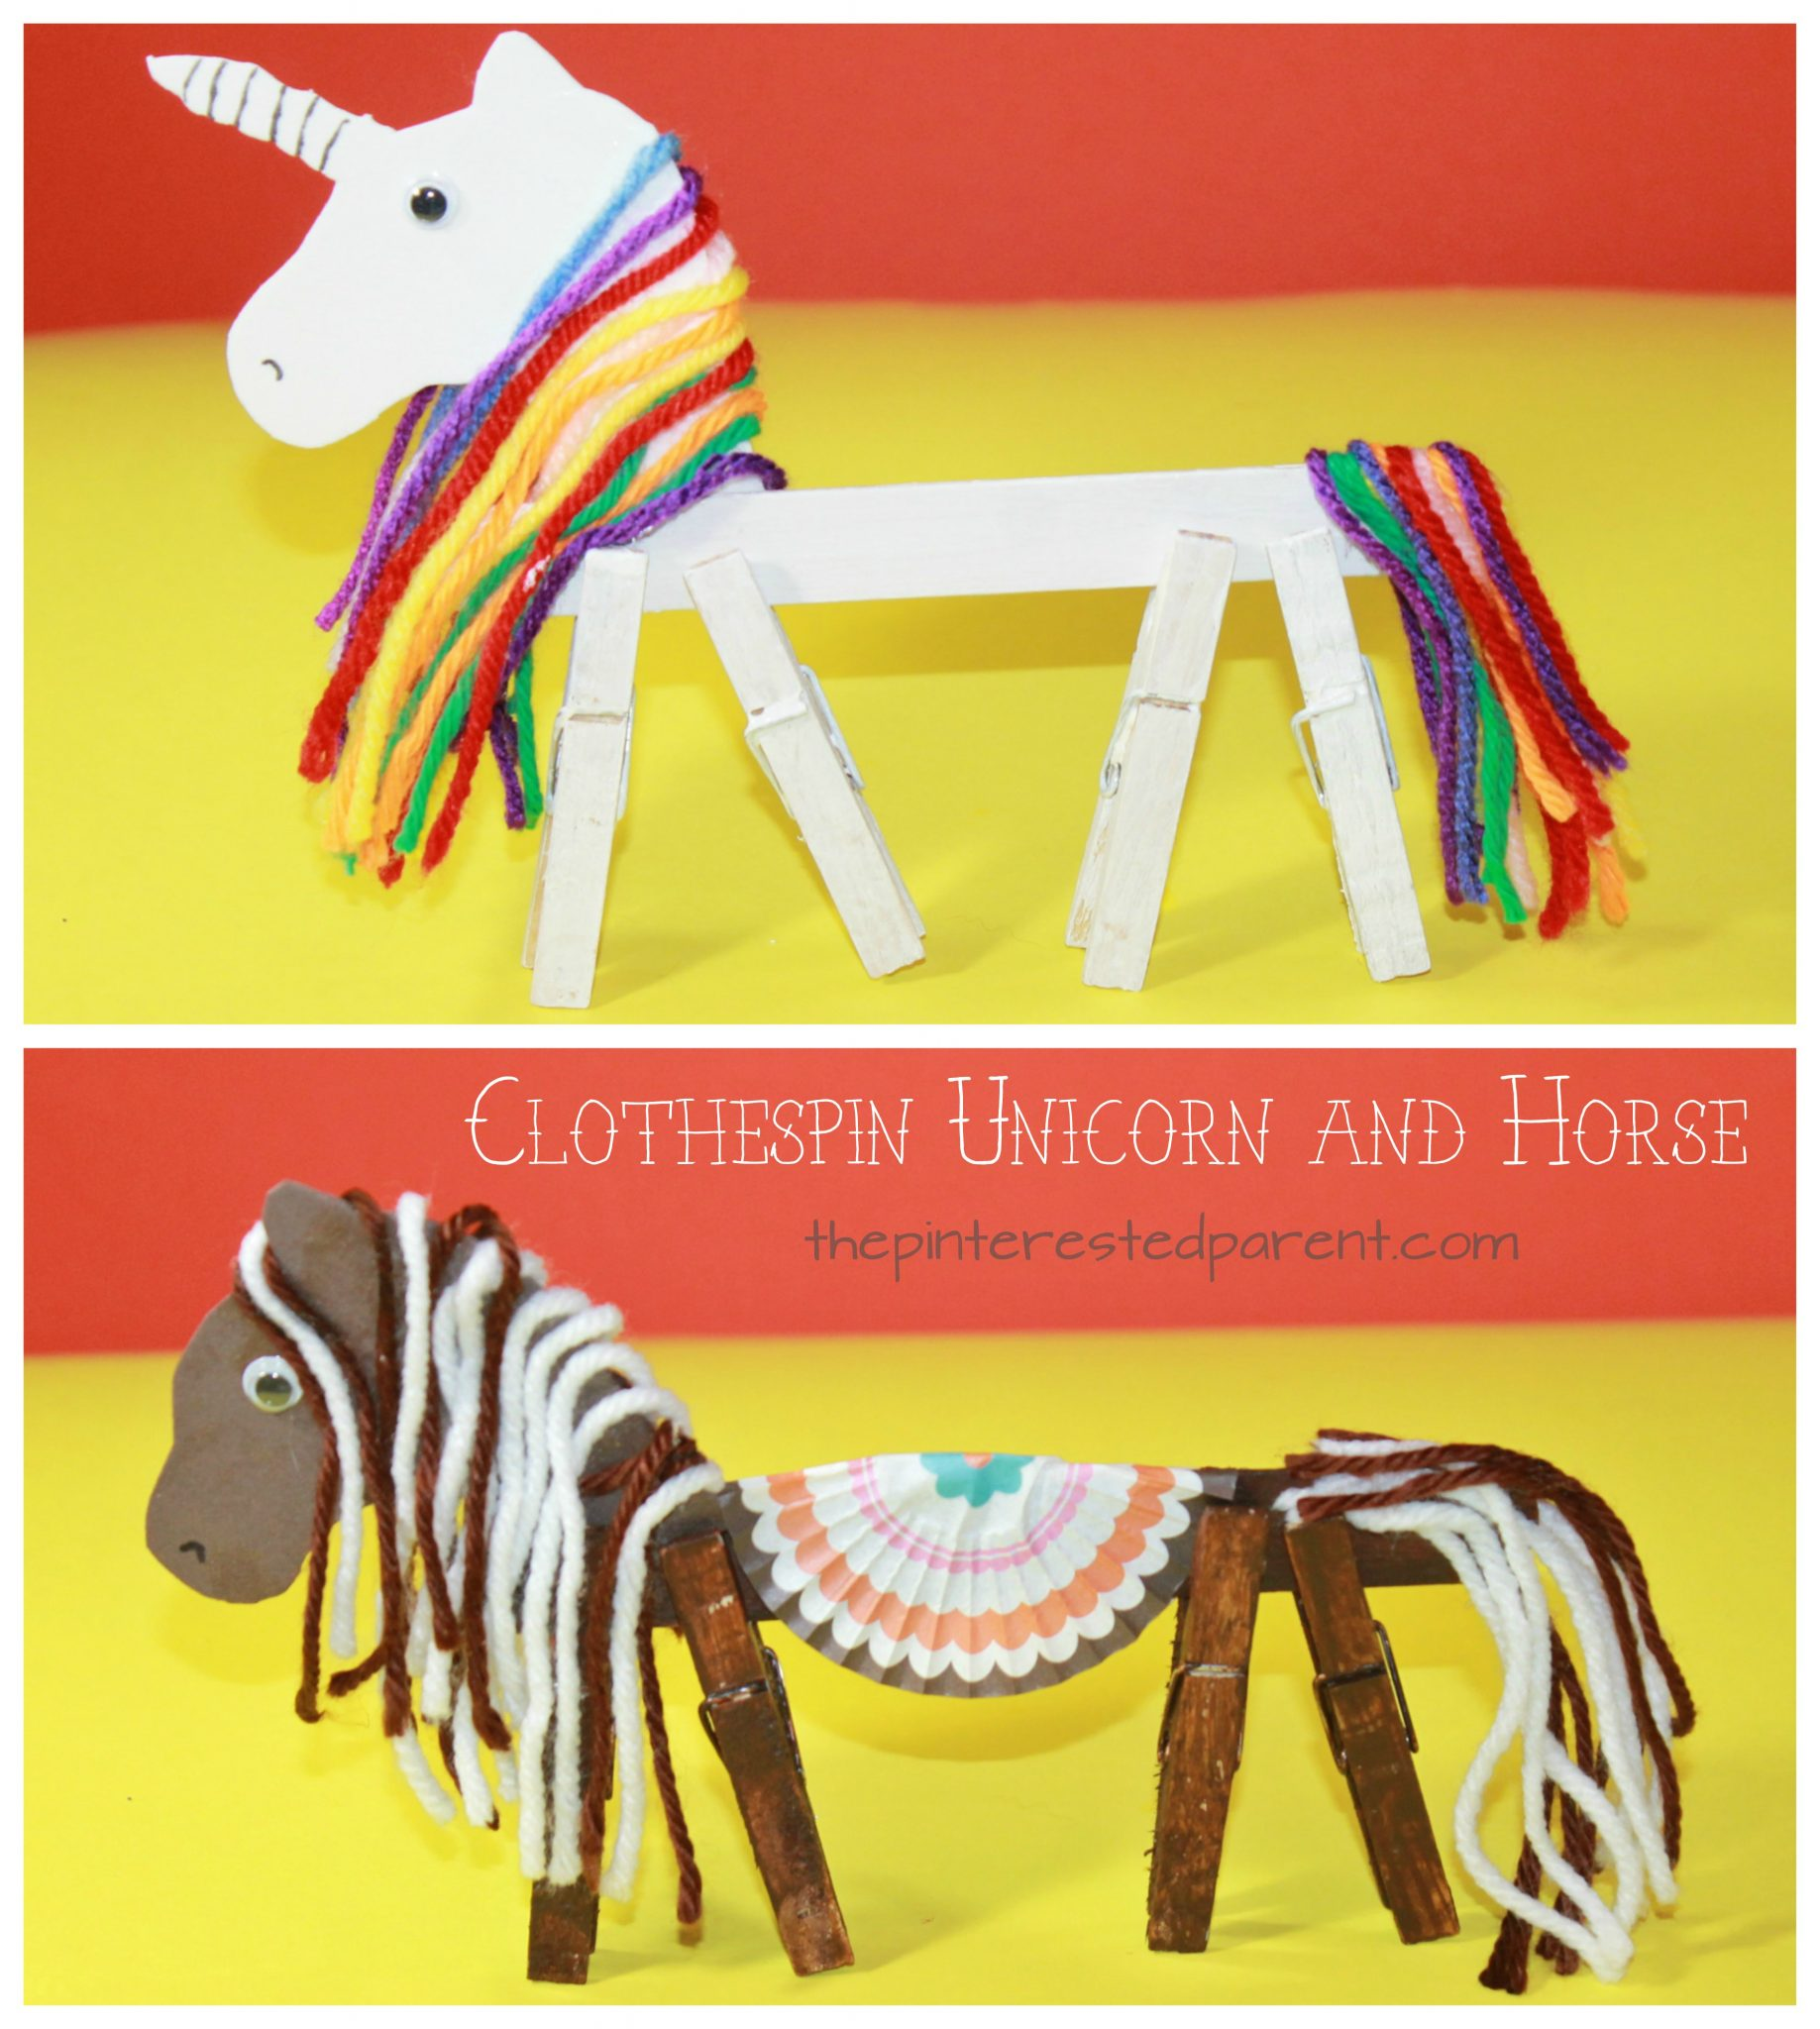 Clothespin Horse Unicorn The Pinterested Parent